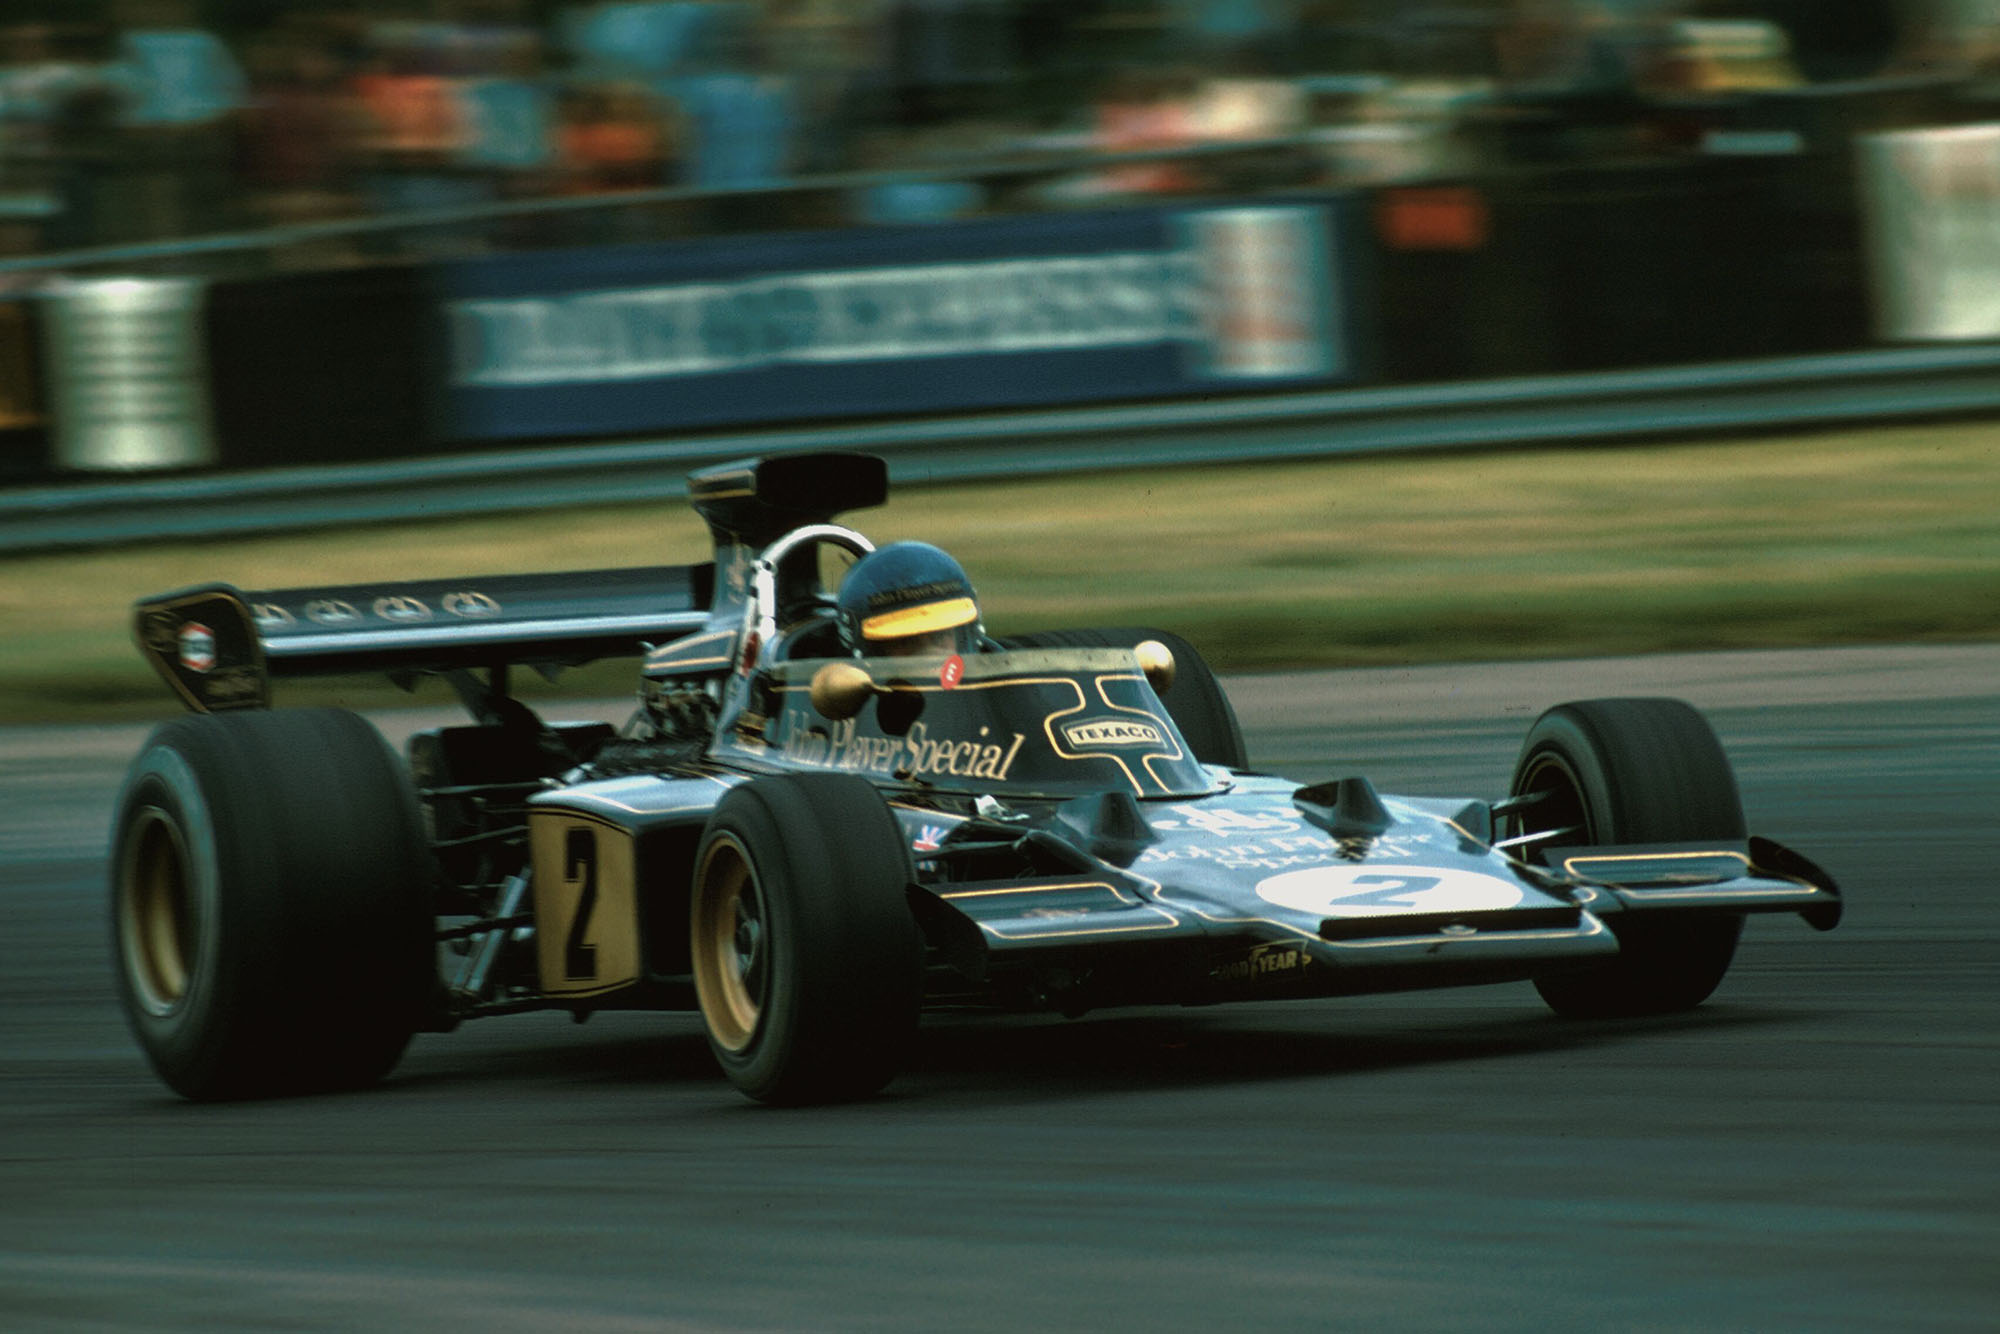 Ronnie Peterson driving for Lotus at the 1973 Swedish Grand Prix